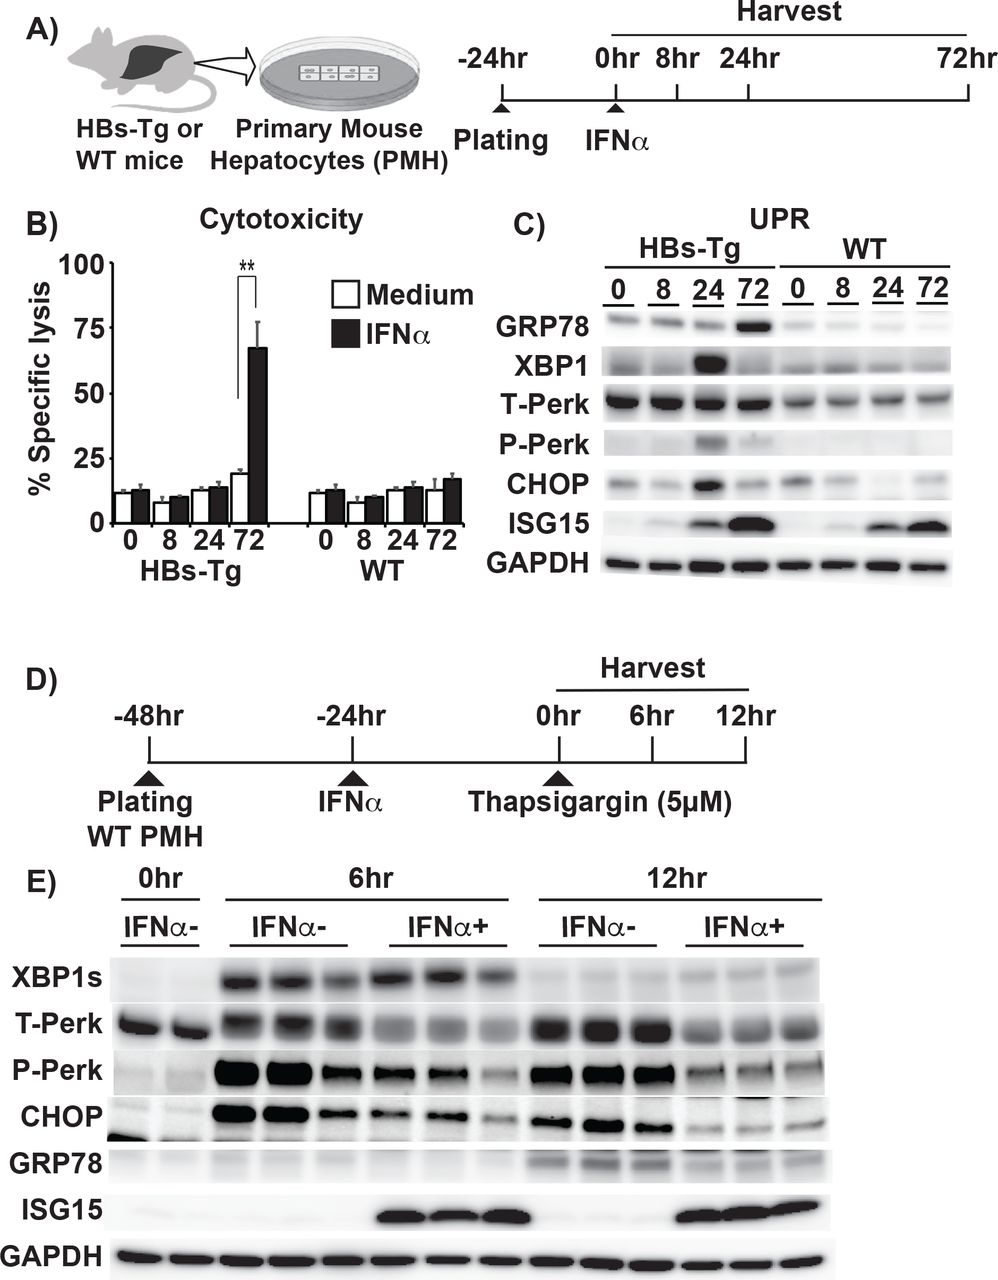 IFNα exerts direct cytotoxicity to HBsAg accumulating hepatocytes and downregulate UPR. (a-c) Effects of IFN signaling and UPR modulation on HBsAg accumulating hepatocytes in vitro. (A) Experimental design. (B) LDH levels in the supernatant of PMH culture were measured at indicated time points after adding medium (white bars) or IFNα (0.1MU/ml) (black bars). (C) The immunoblots of UPR related molecules and ISG15 at specified time points after IFNα treatment. (D, E) IFNα suppresses chemically induced UPR in vitro. (D) Experimental schema. (E) Representative immunoblots show the effect of IFNα on UPR related-protein levels at 0, 6, and 12 hours after treatment with <t>thapsigargin.</t>